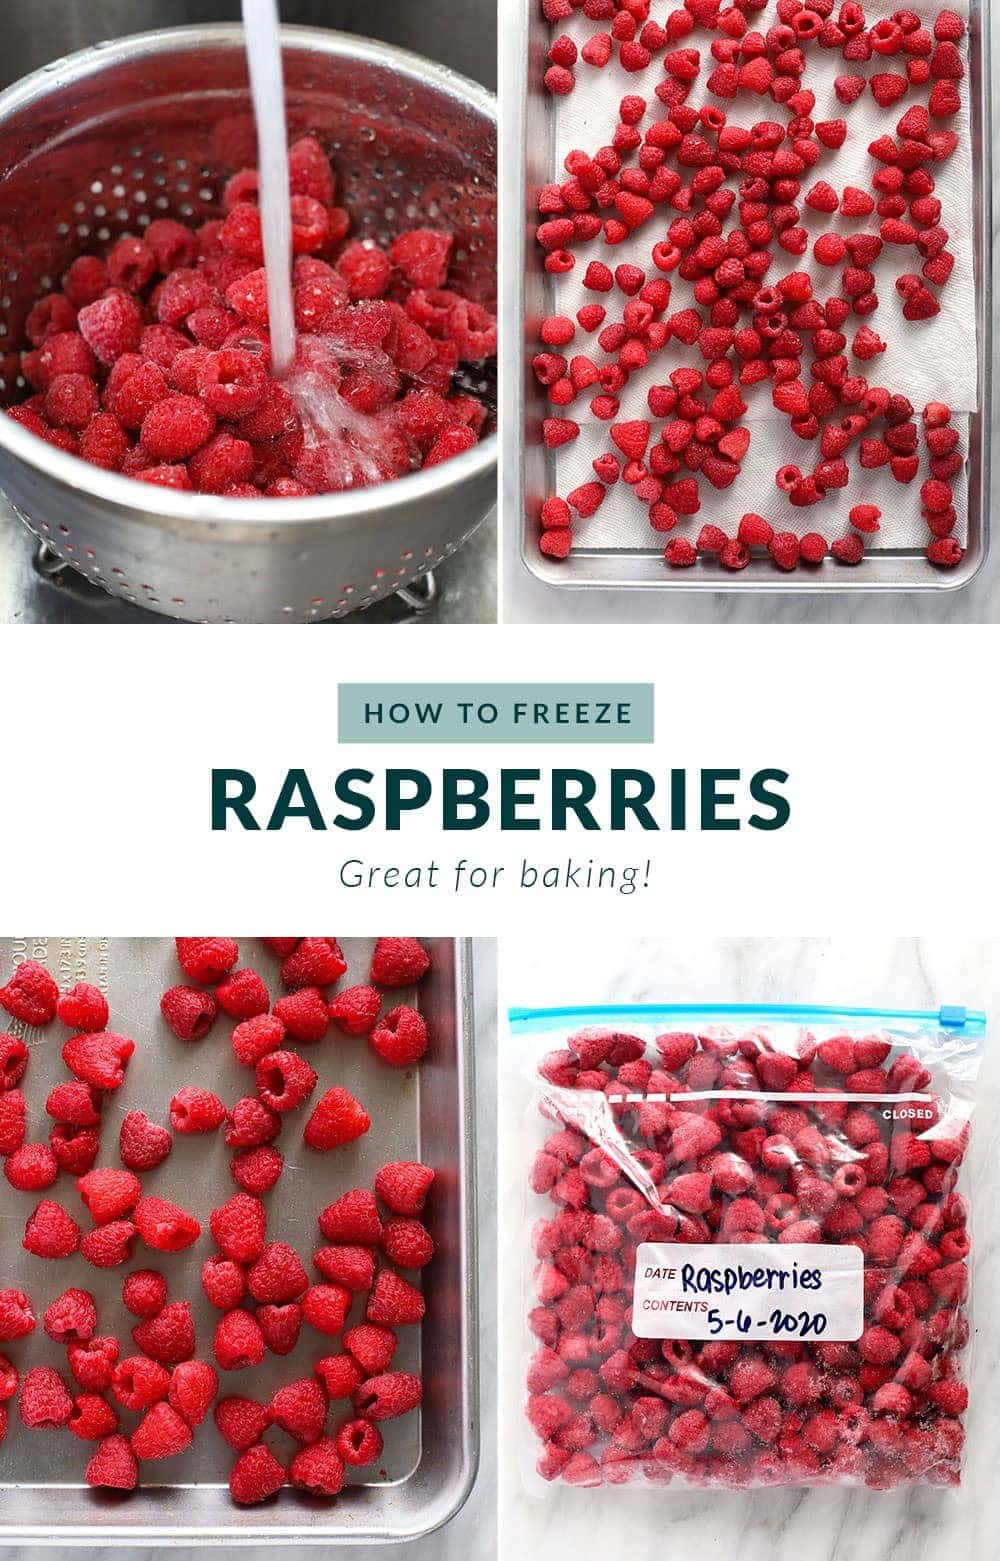 how to freeze raspberries step by step